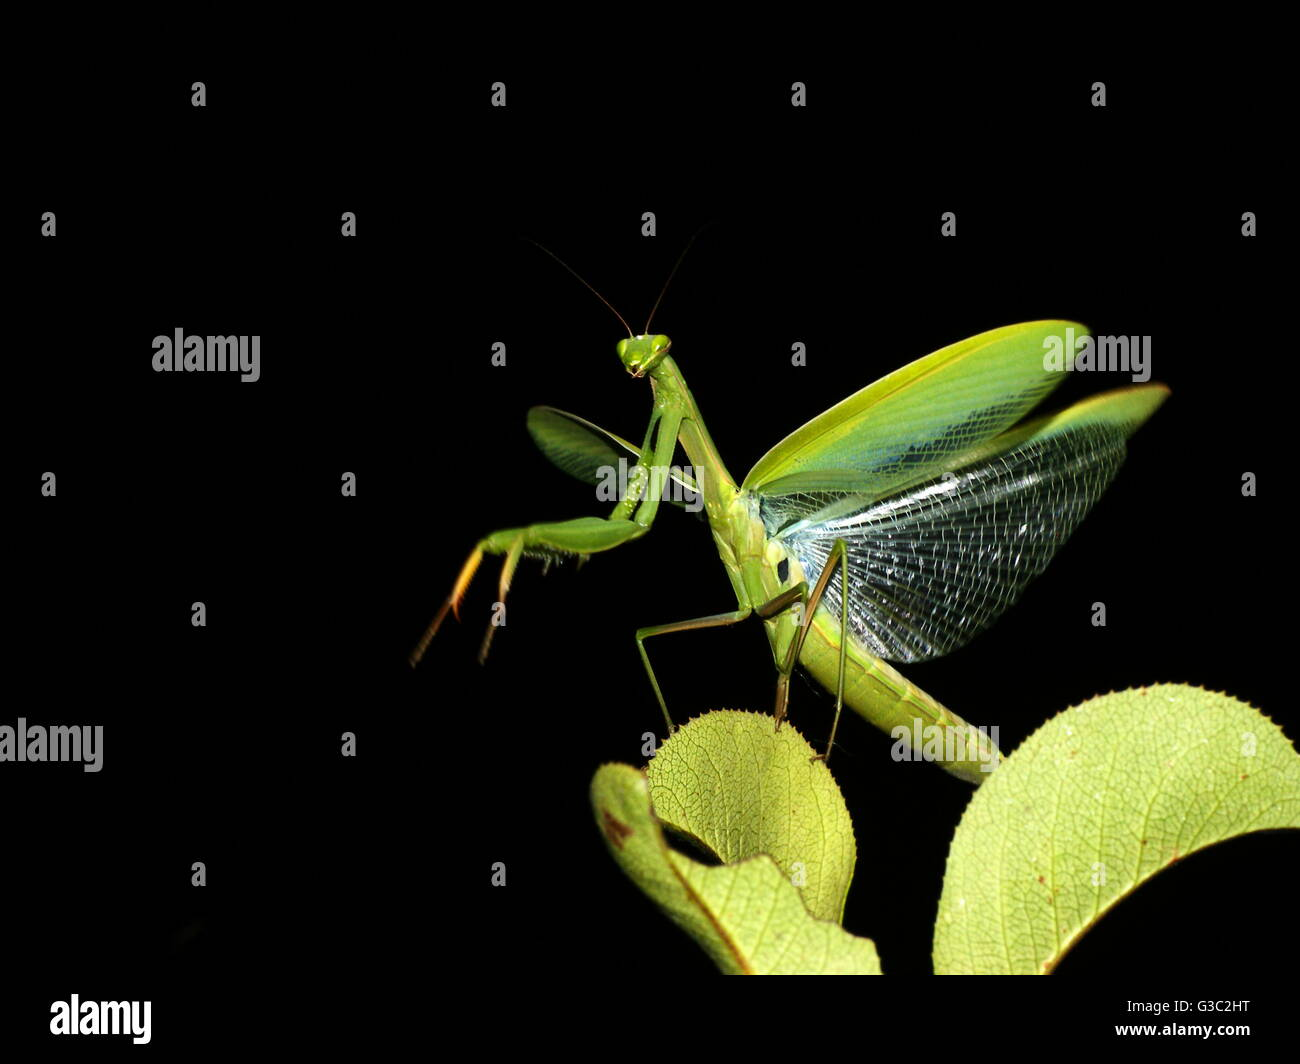 Praying Mantis with wings spread. Stock Photo